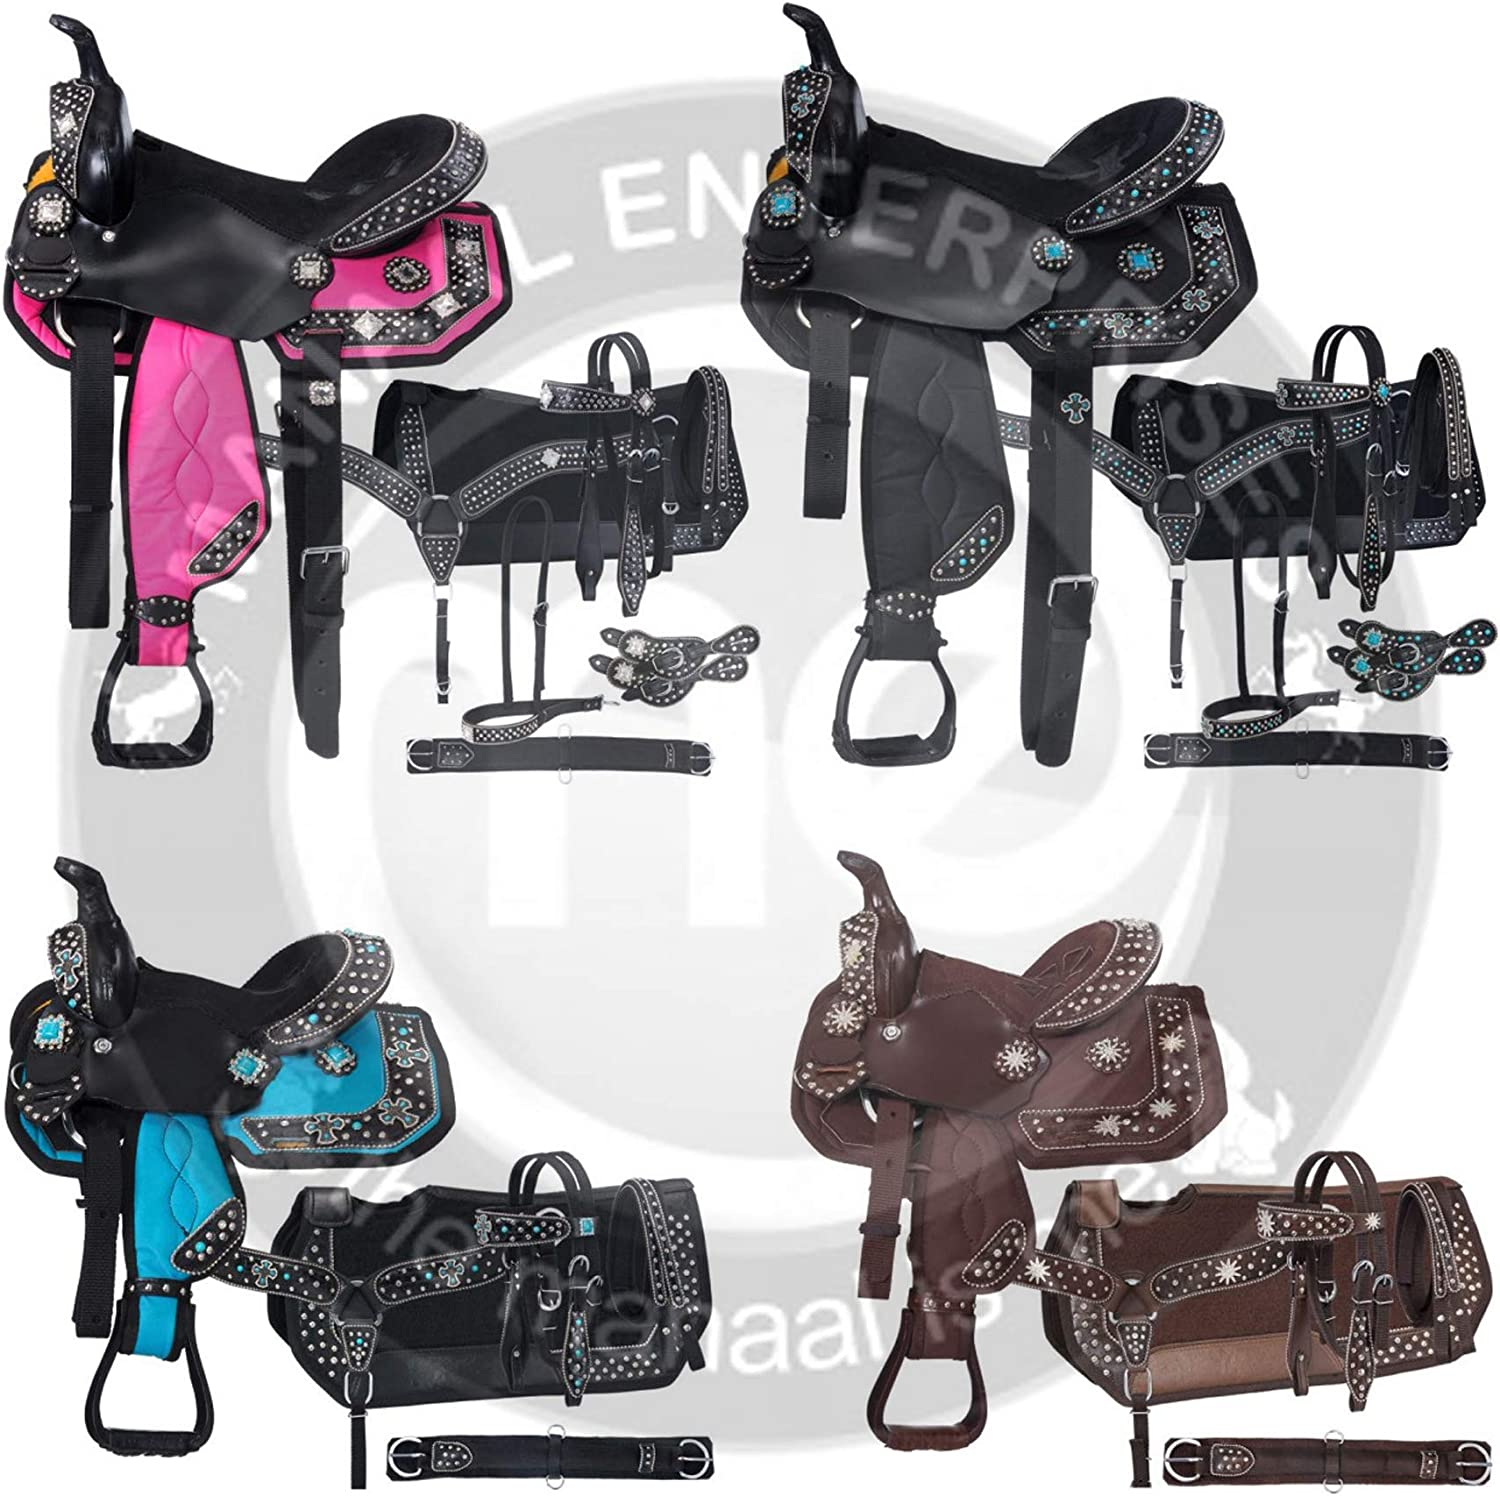 Get Matching Headstall Reins /& Saddle Pad Size 14 to 18 Inches Seat Available ME Enterprises Synthetic Western Adult Horse Saddle Tack Barrel Racing Breast Collar